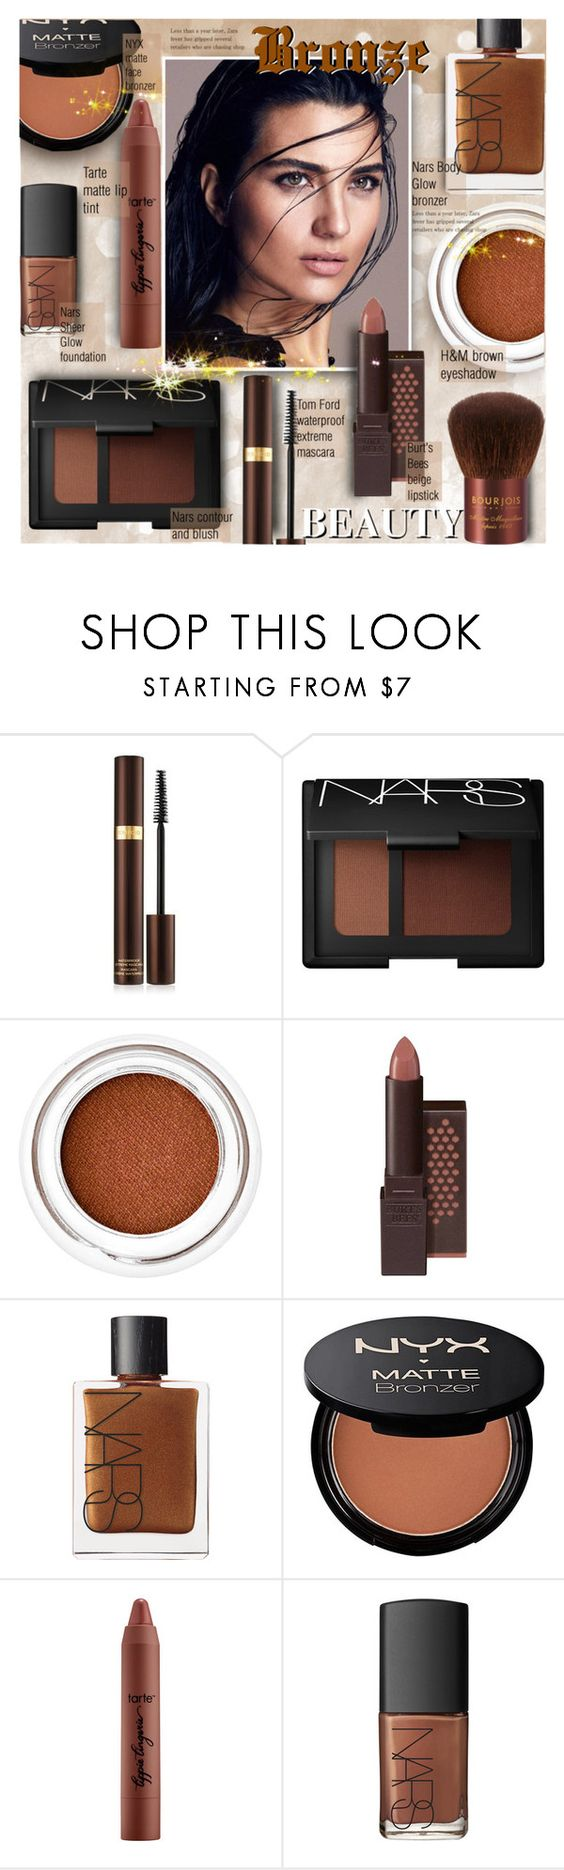 """Bronze Beauty"" by alexandrazeres ❤ liked on Polyvore featuring beauty, Tom Ford, NARS Cosmetics, Burt's Bees, tarte, Bourjois, bronzer, cosmetics, makeupset and bronzebeauty"